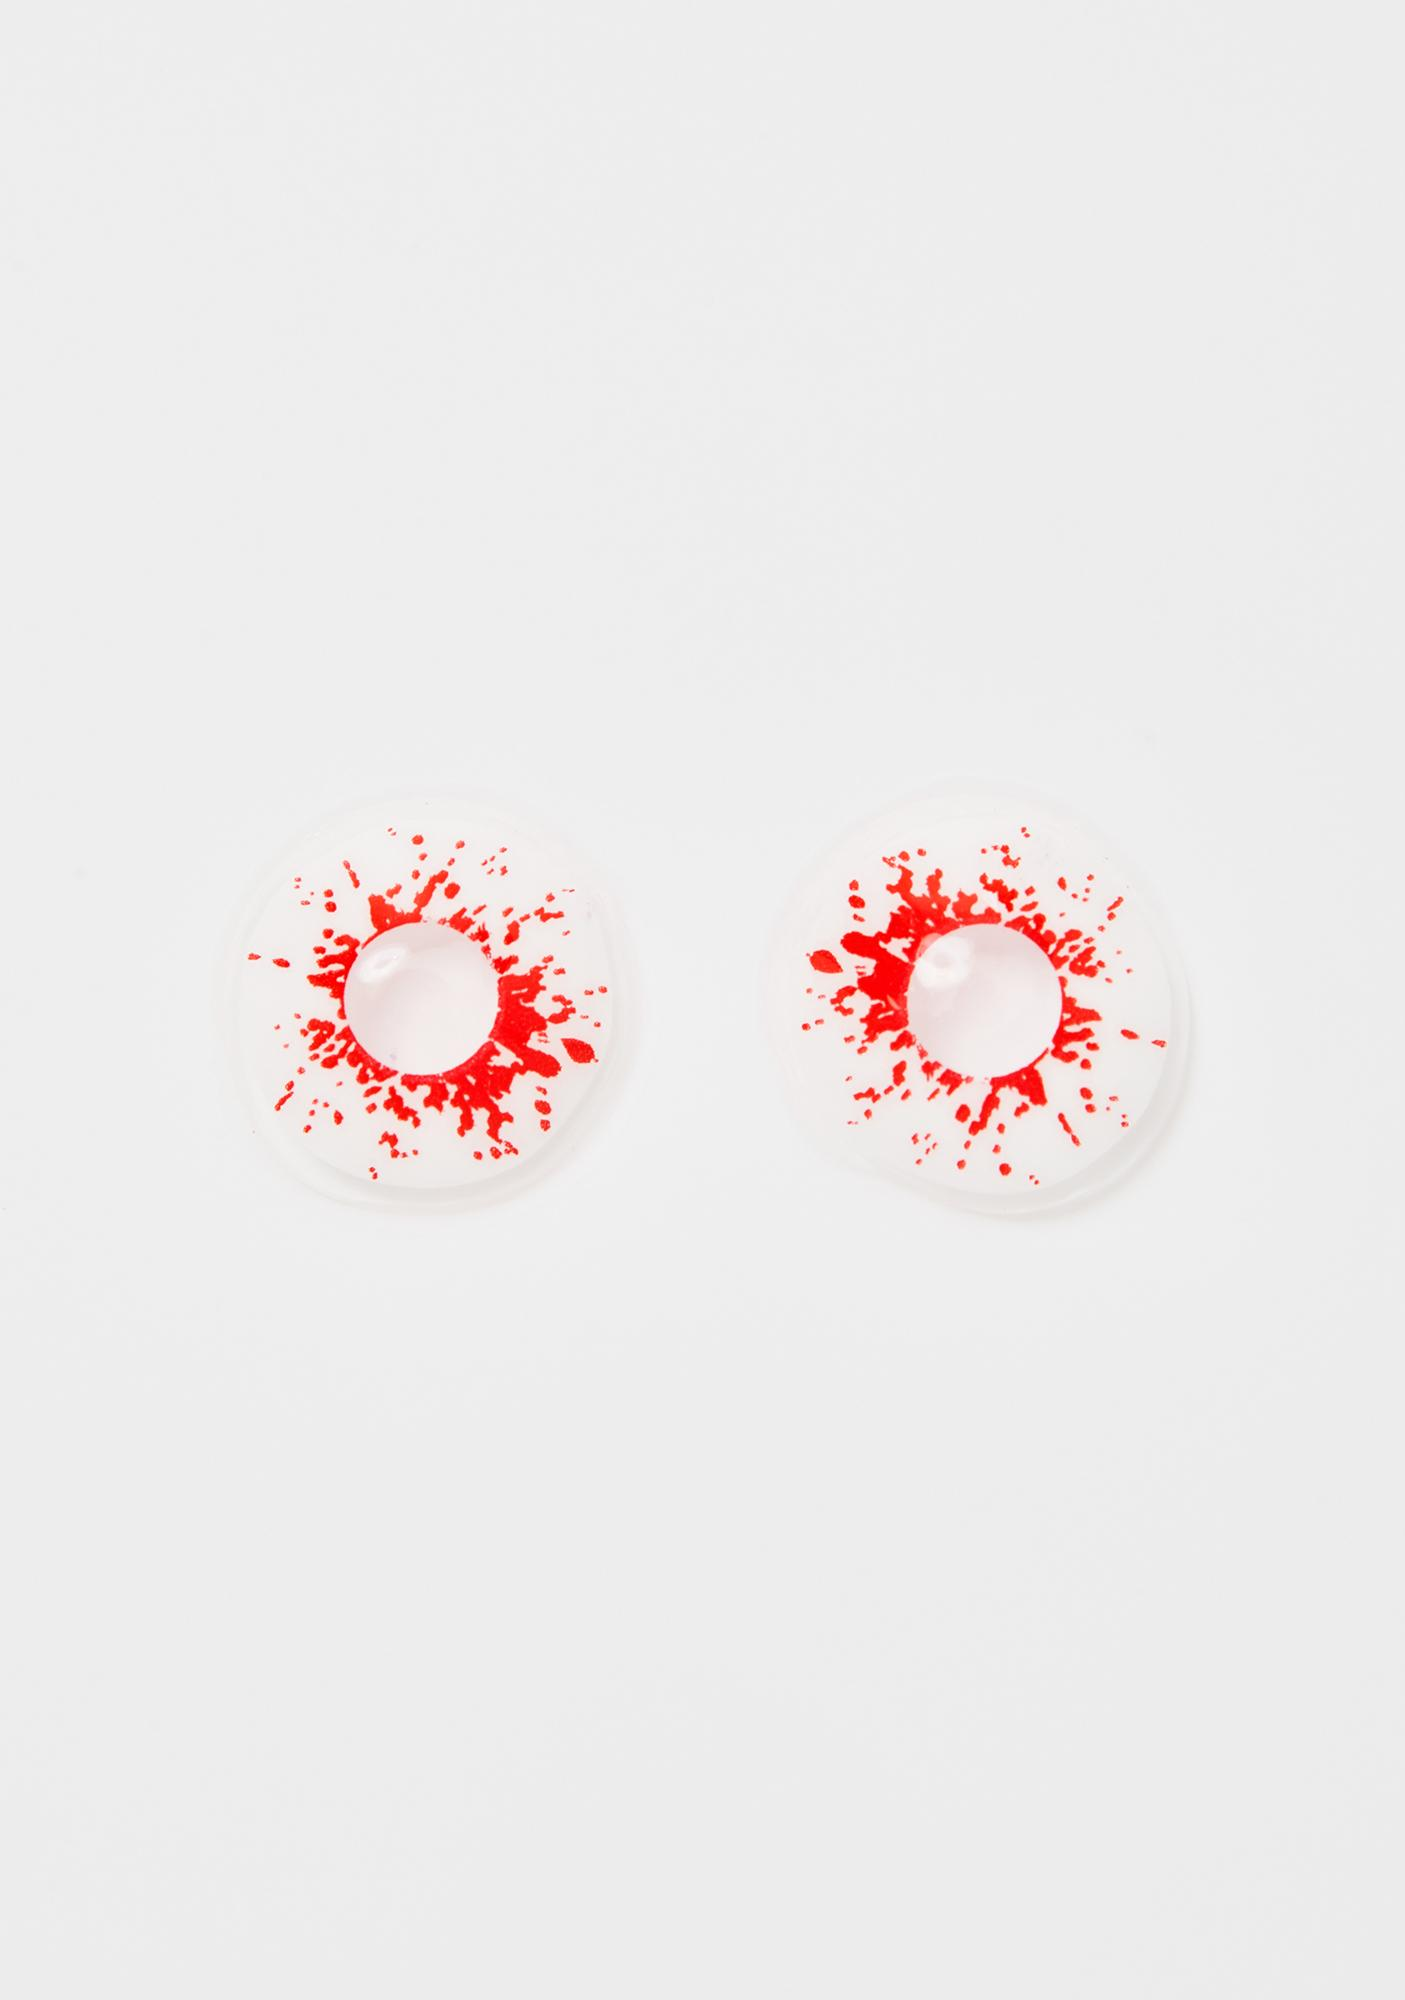 Bloodshot Stare Contact Lenses